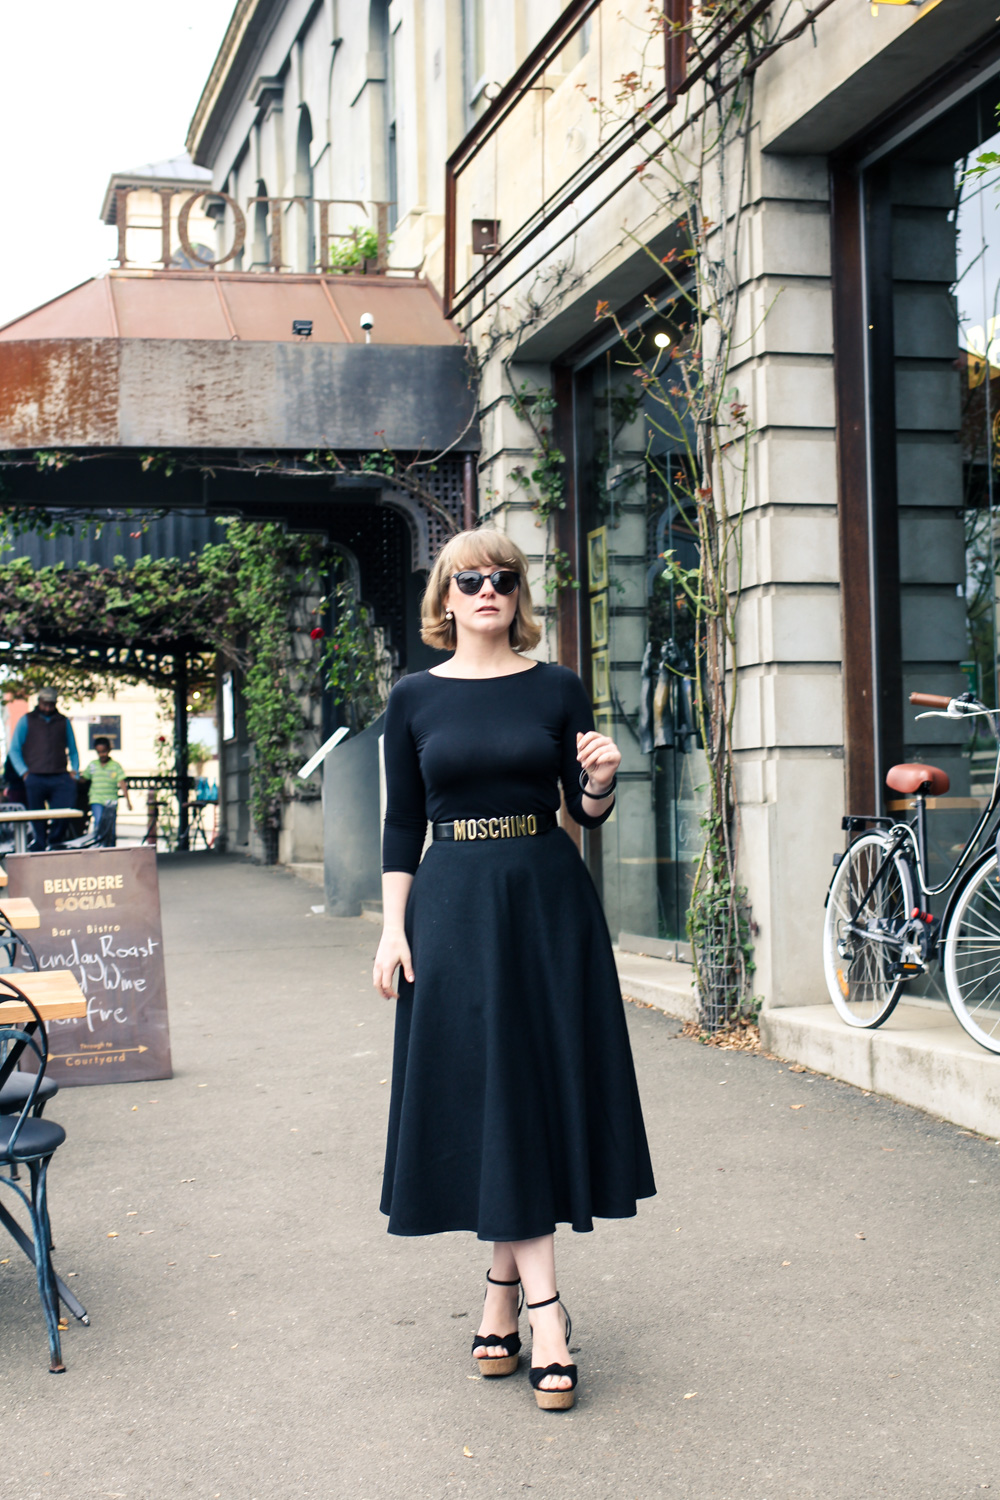 Liana of @findingfemme wearing black Moschino belt at the Belvedere Social in Daylesford